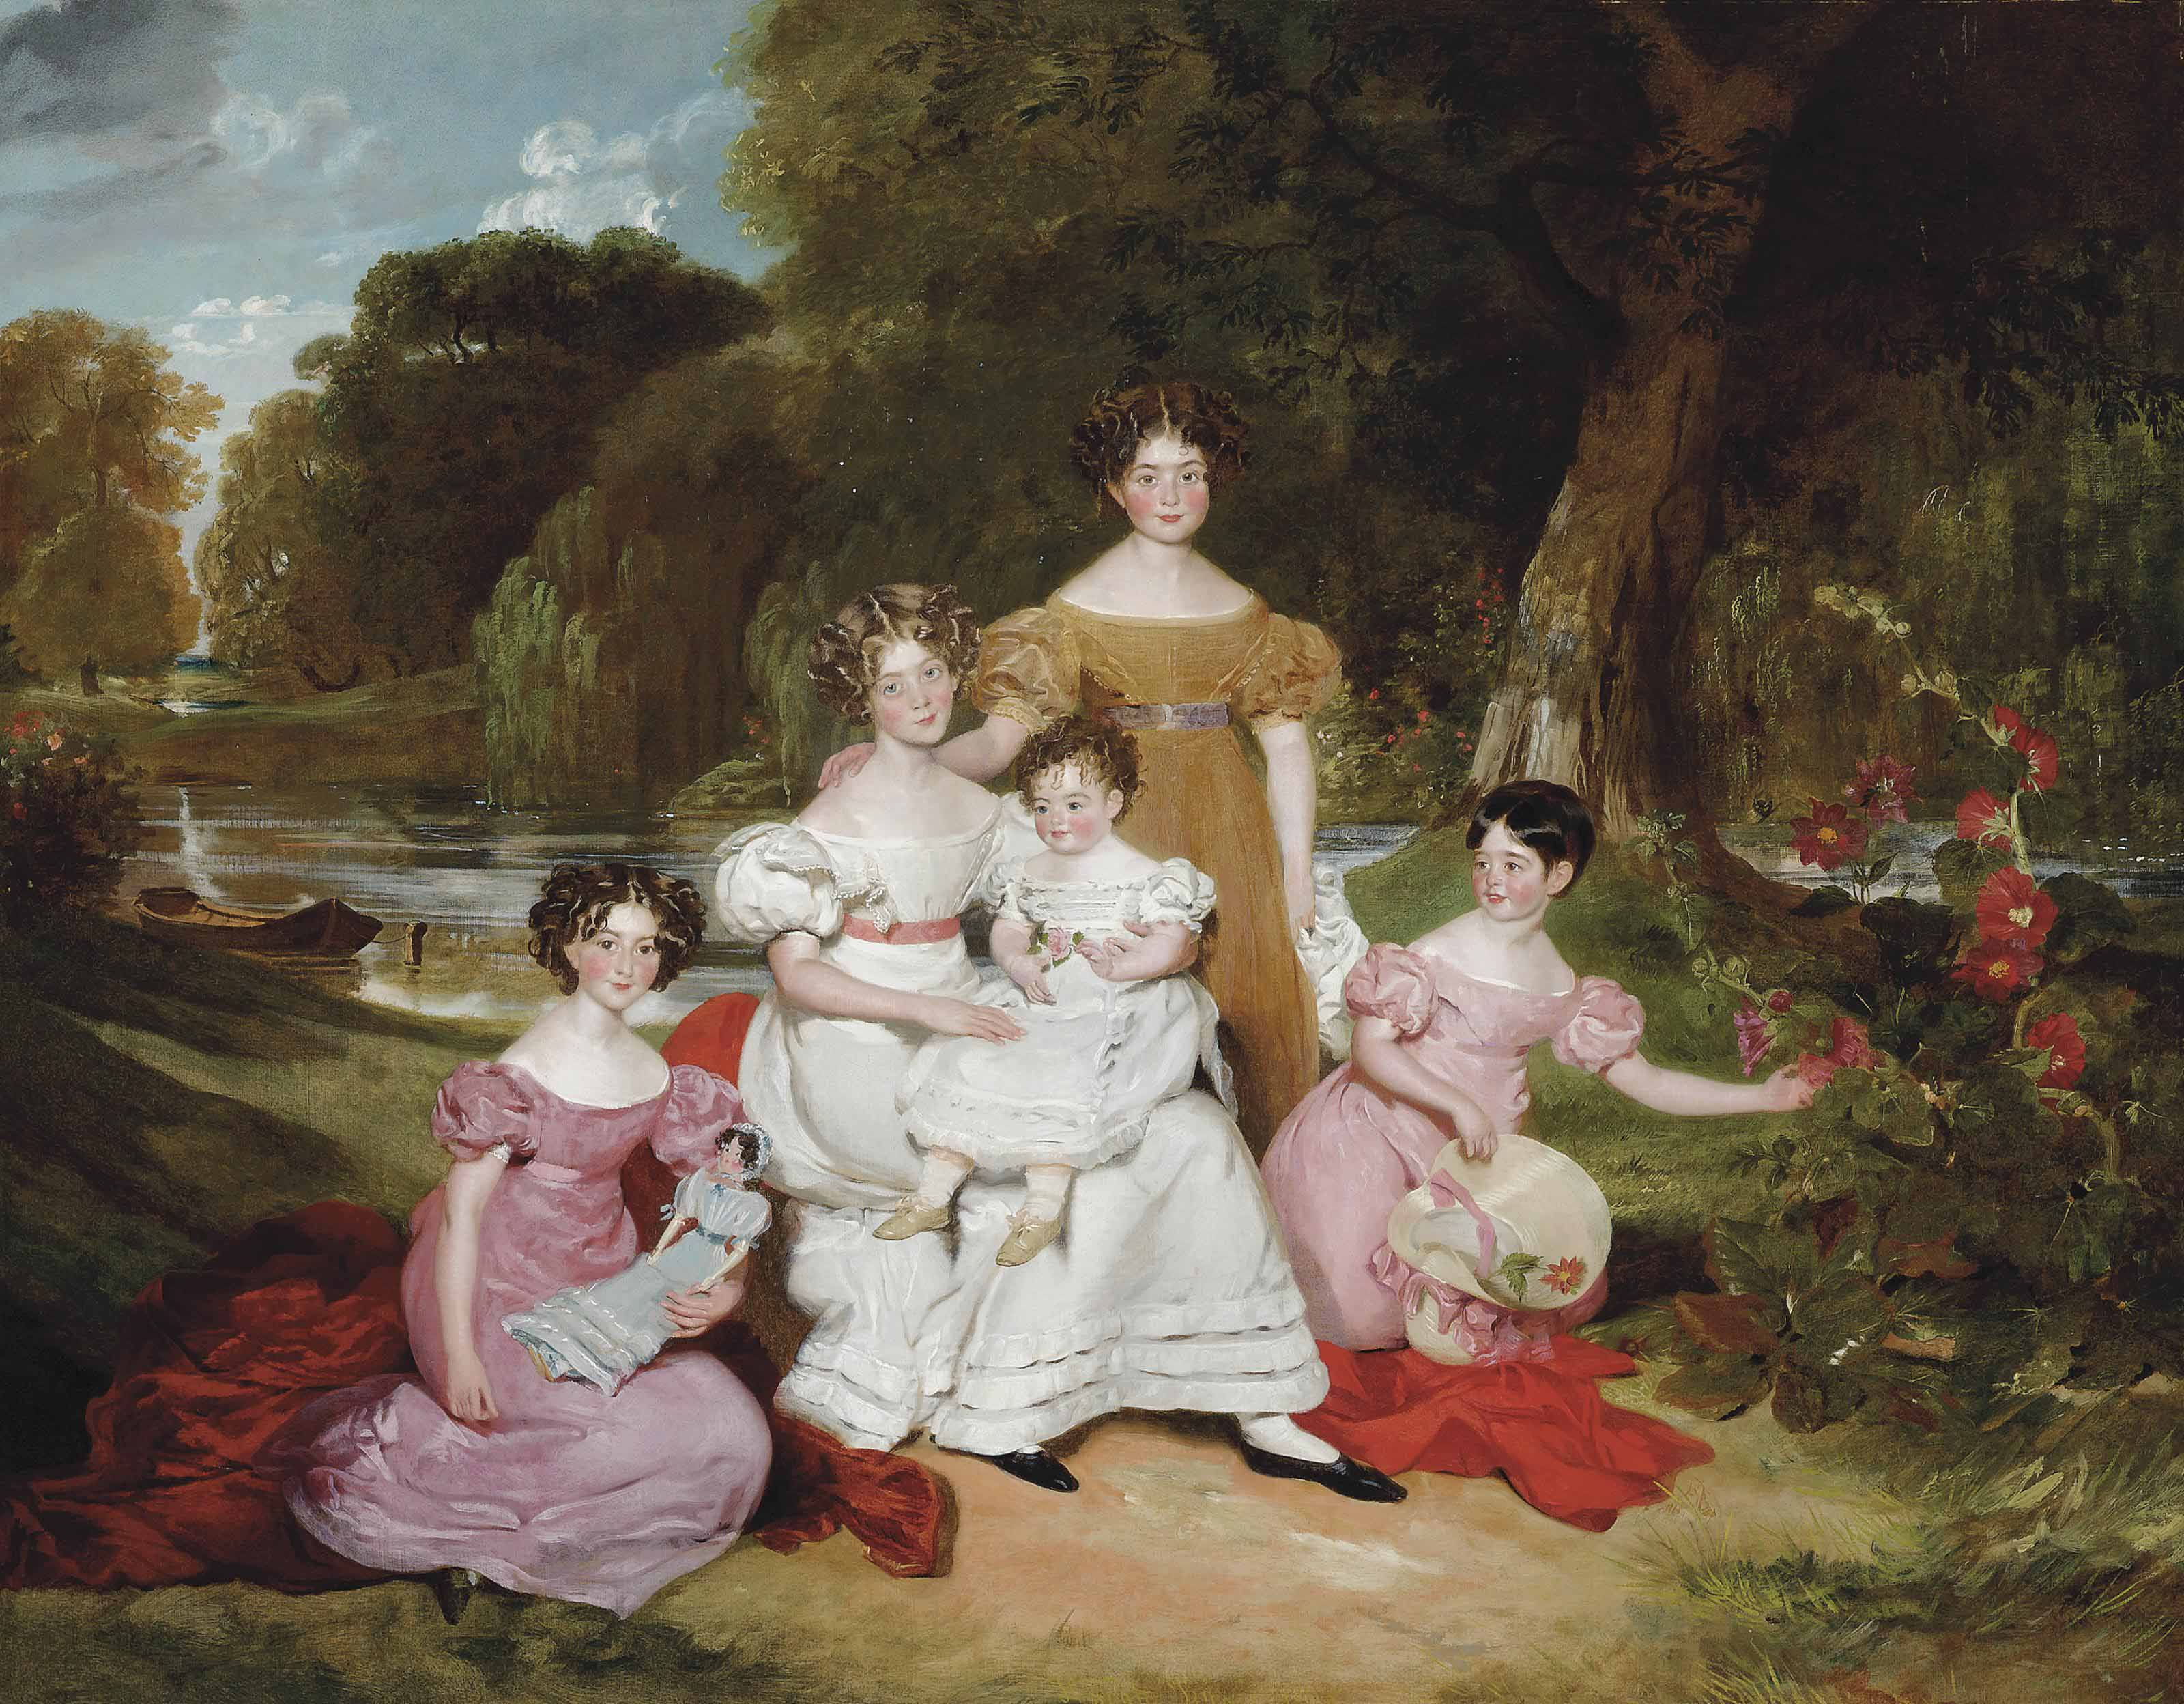 Group portrait of the Ward Hunt family in a landscape before a river